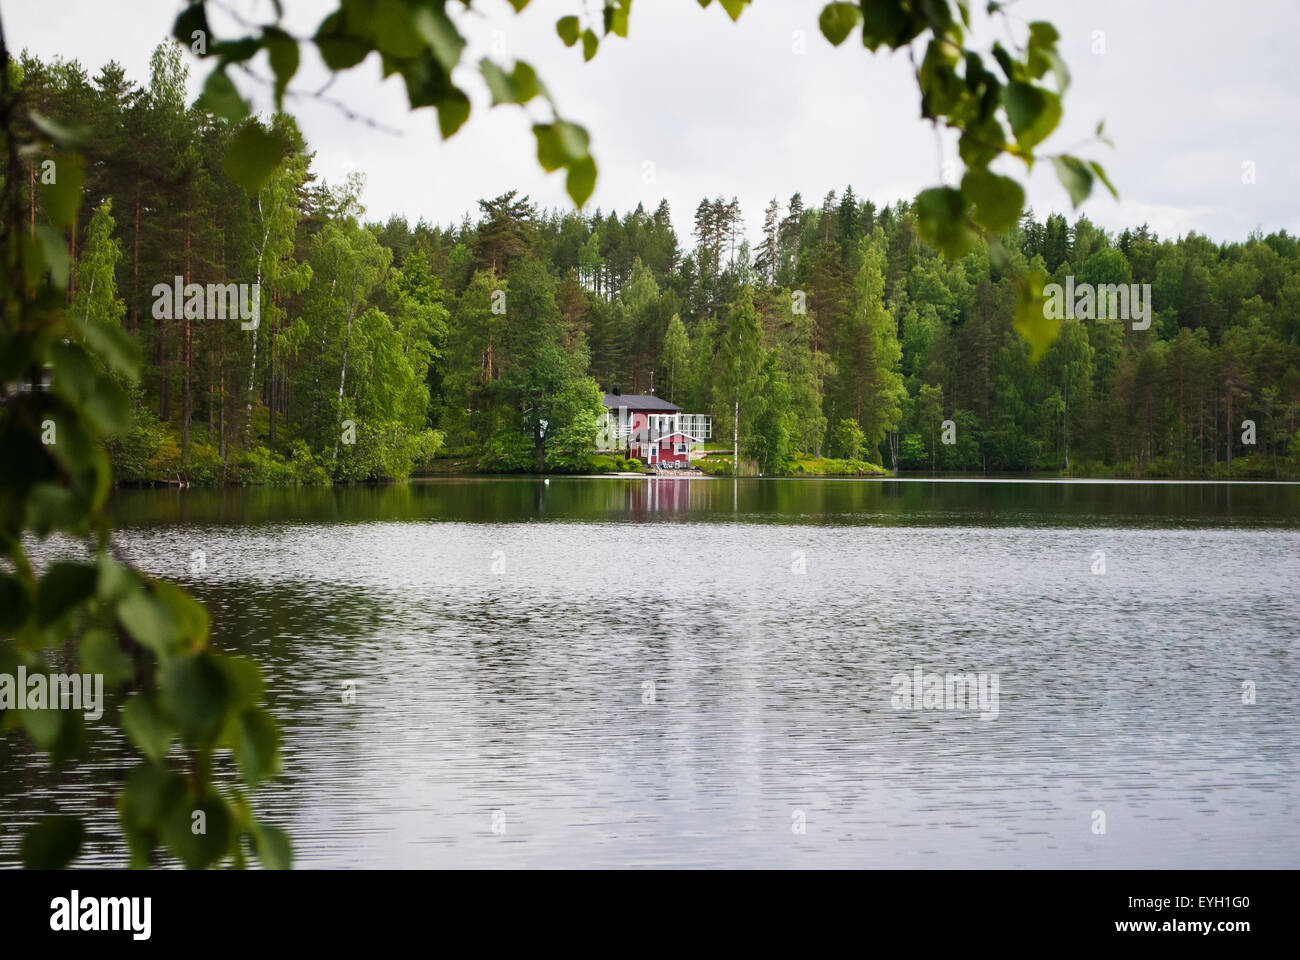 Finnish house on the shore of forest lake in the Vierumaki Sports Centre. - Stock Image